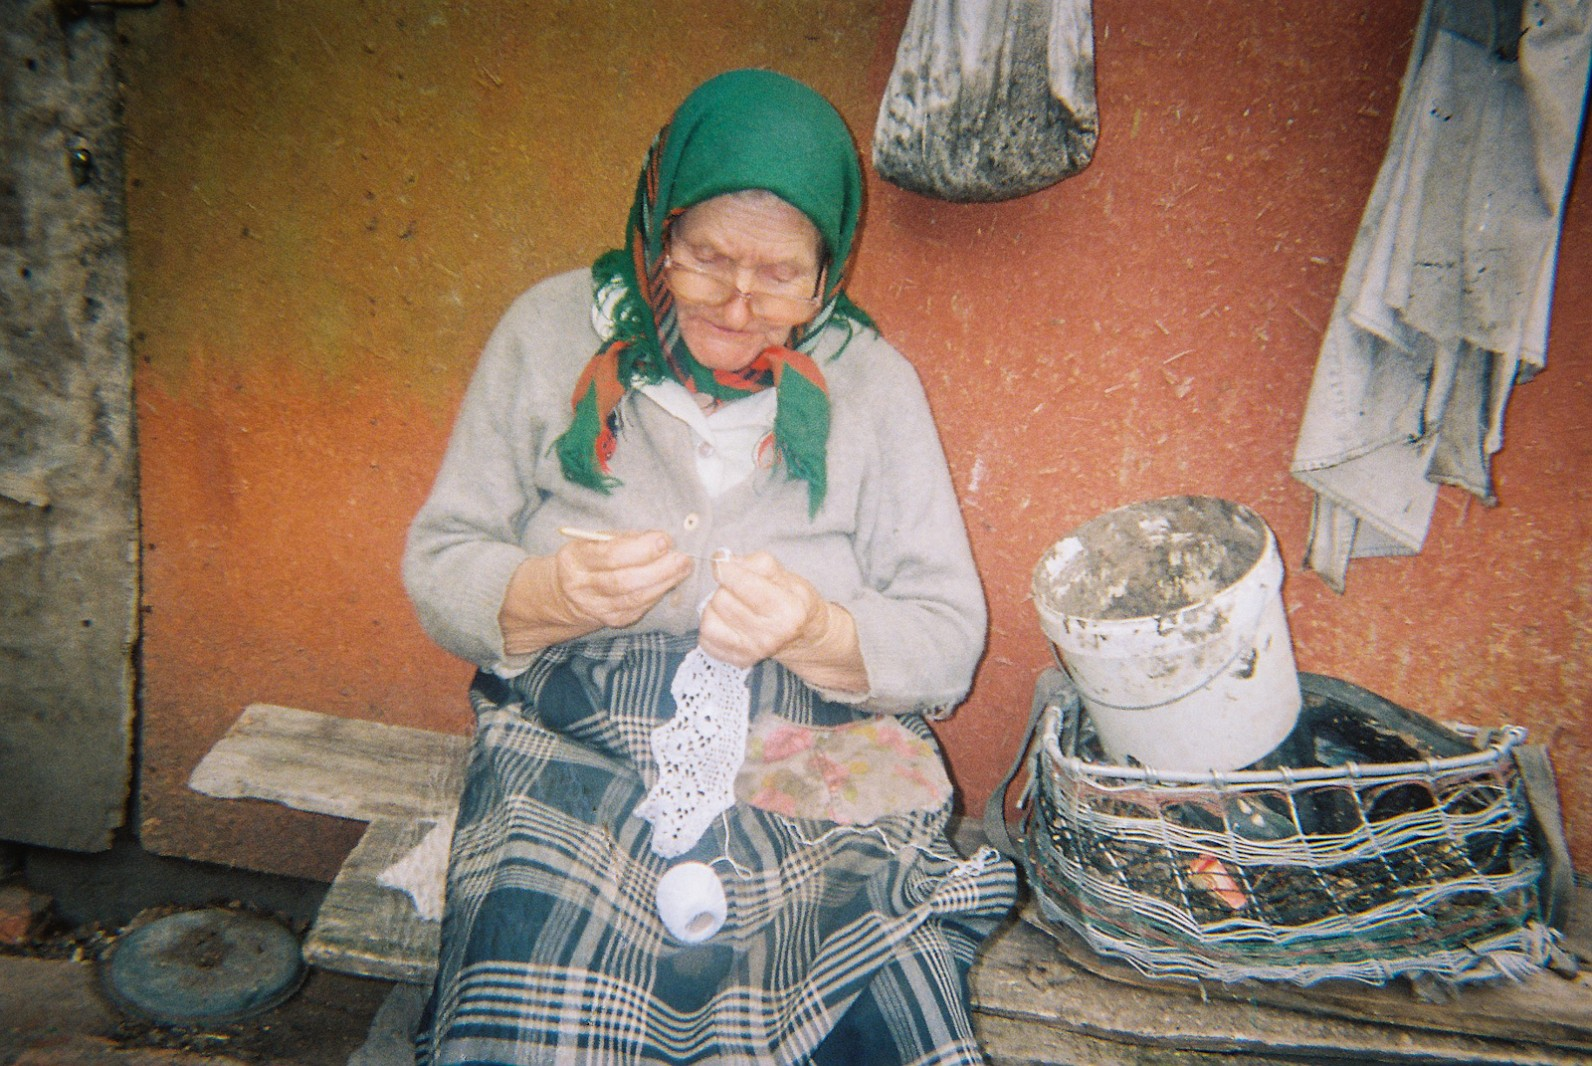 An elderly lady doing embroidery outside her  rural home